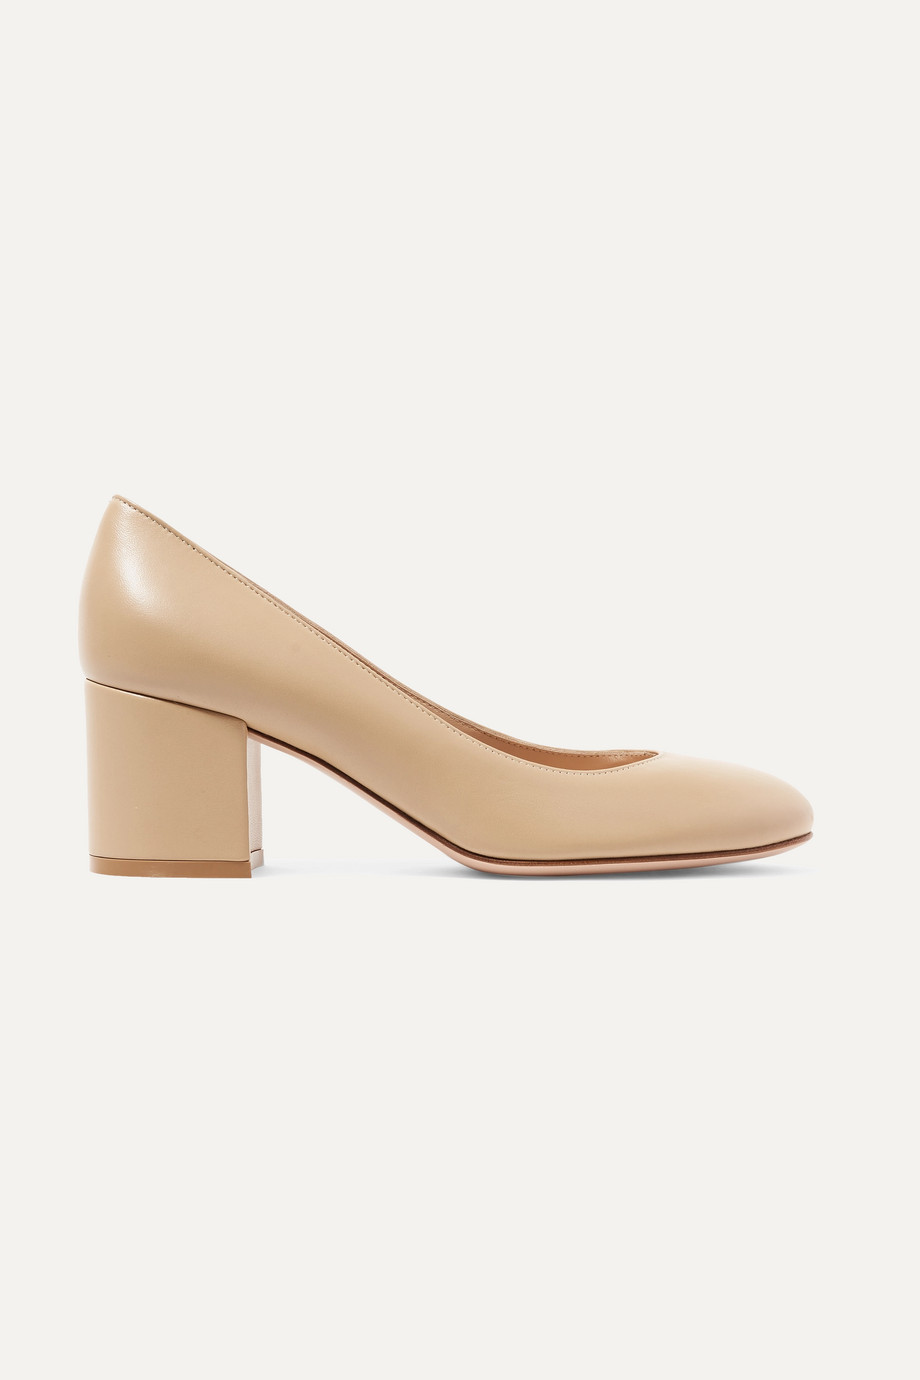 Gianvito Rossi 60 leather pumps